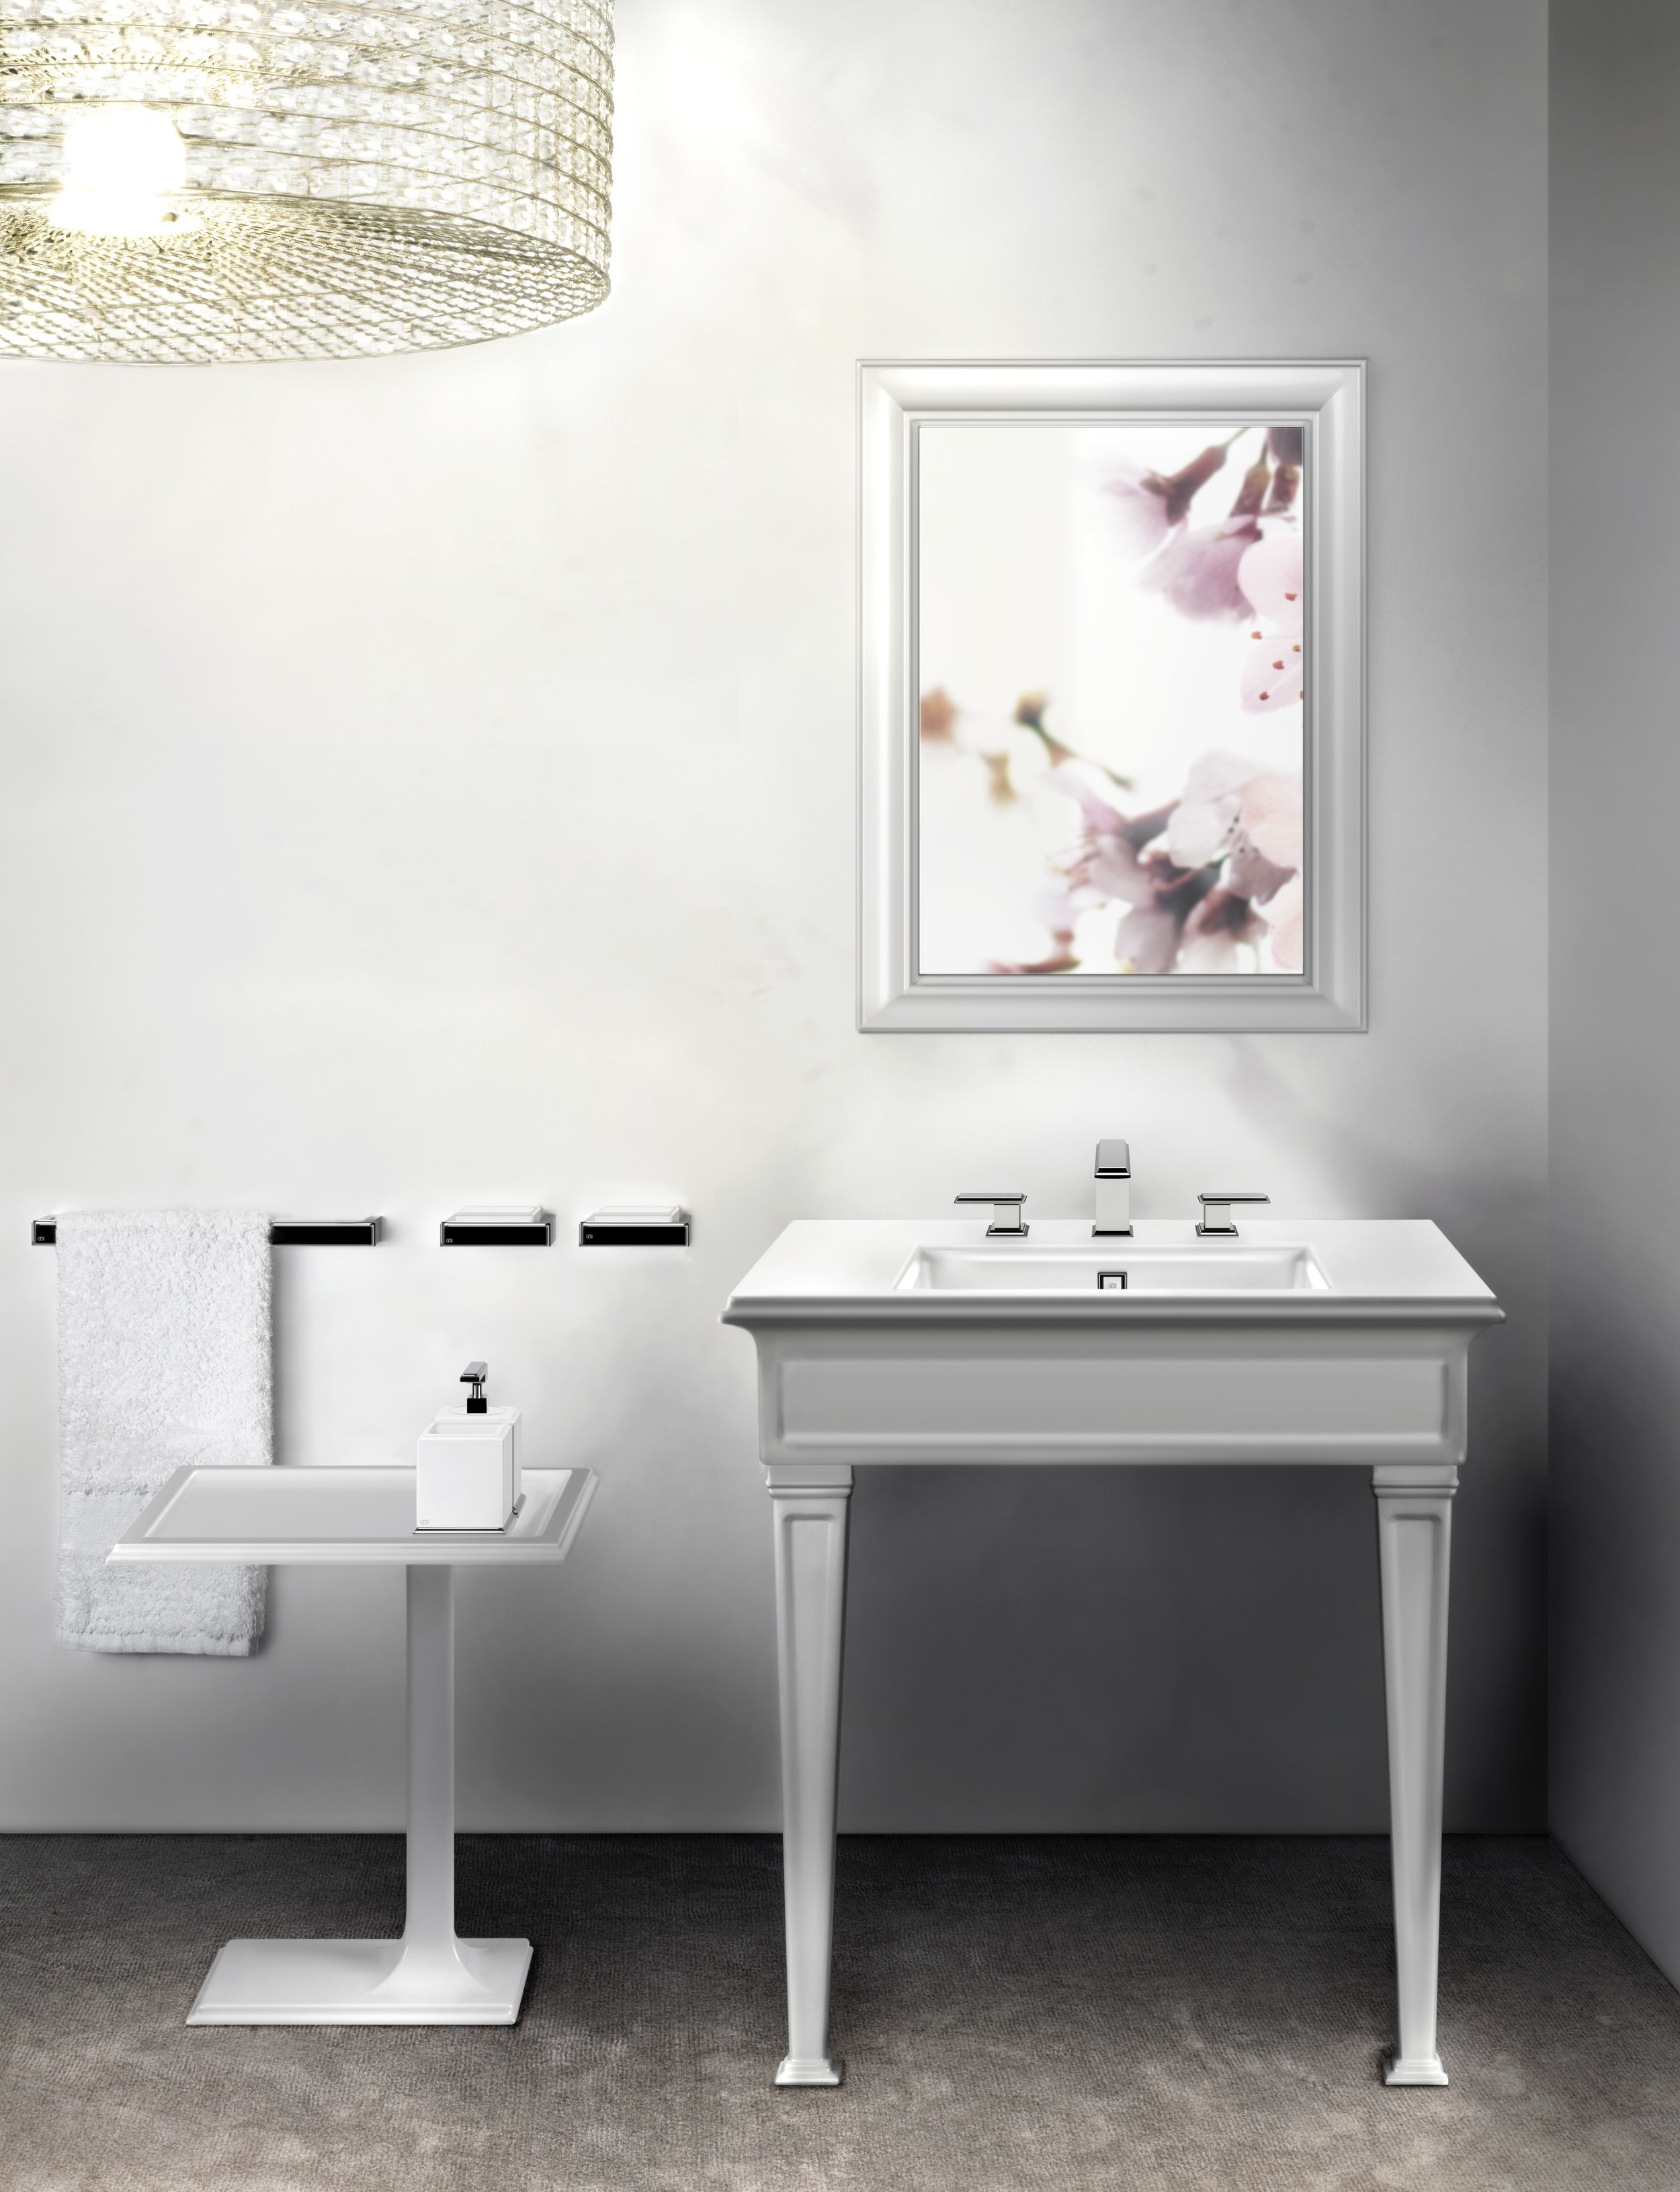 Fascino Gessi console lav and table.jpg